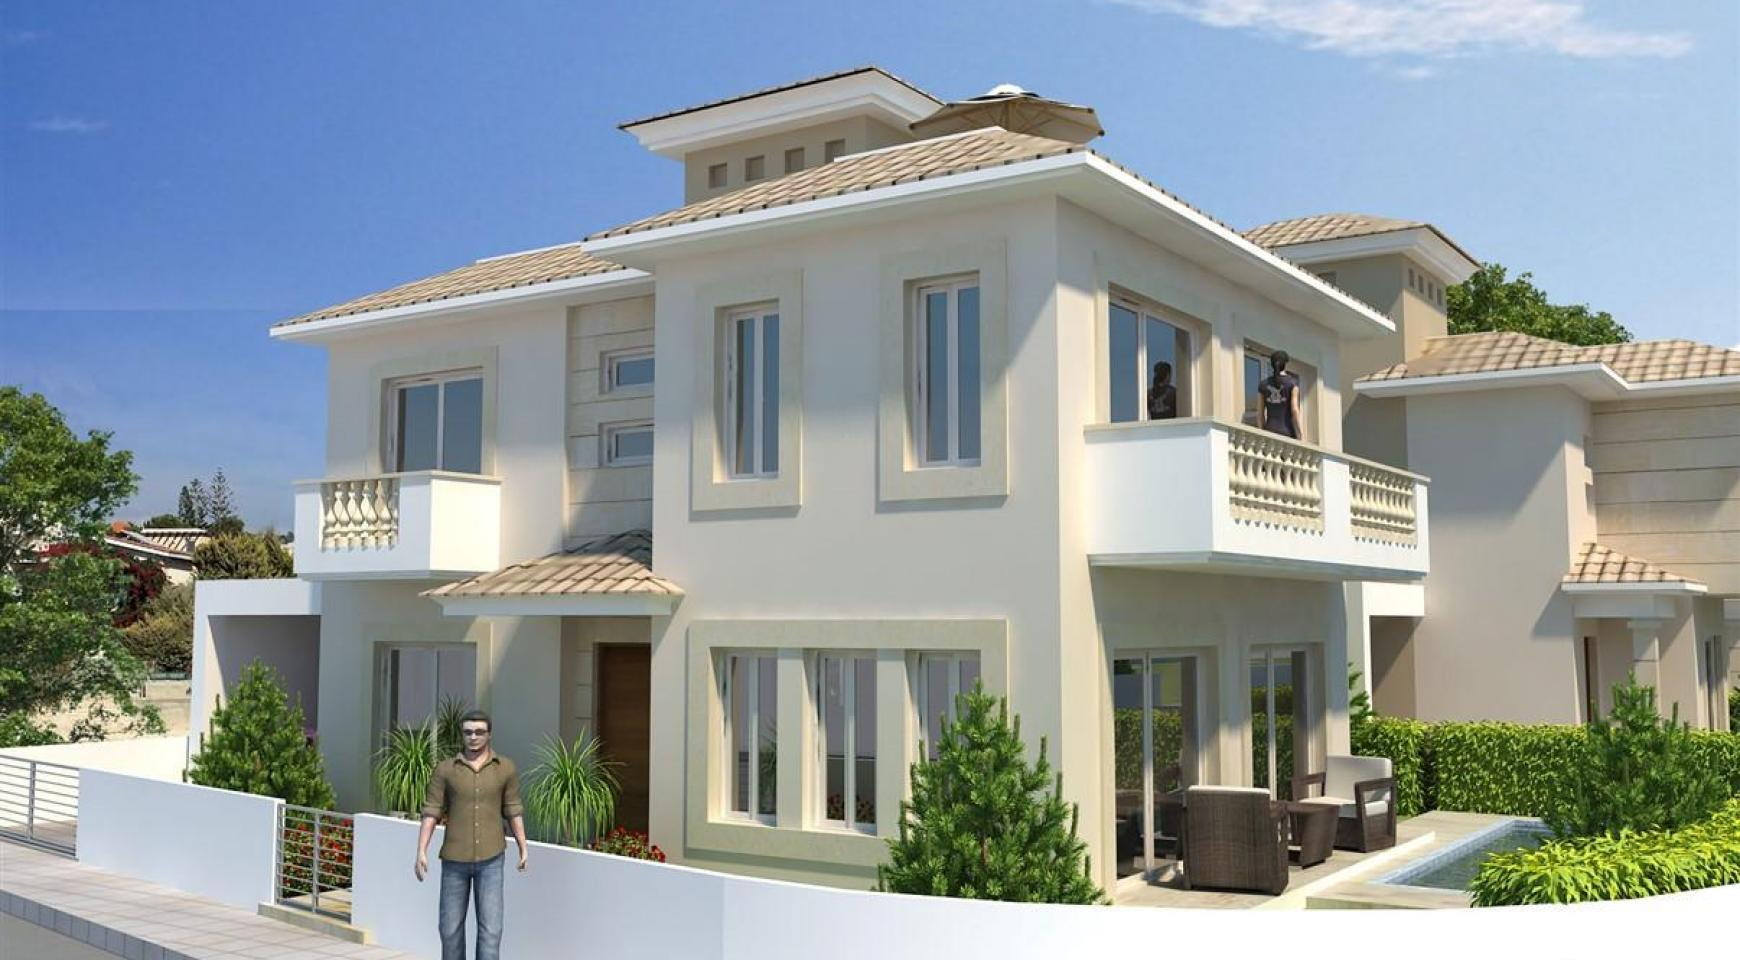 3 Bedroom Villa in a New Project - 22